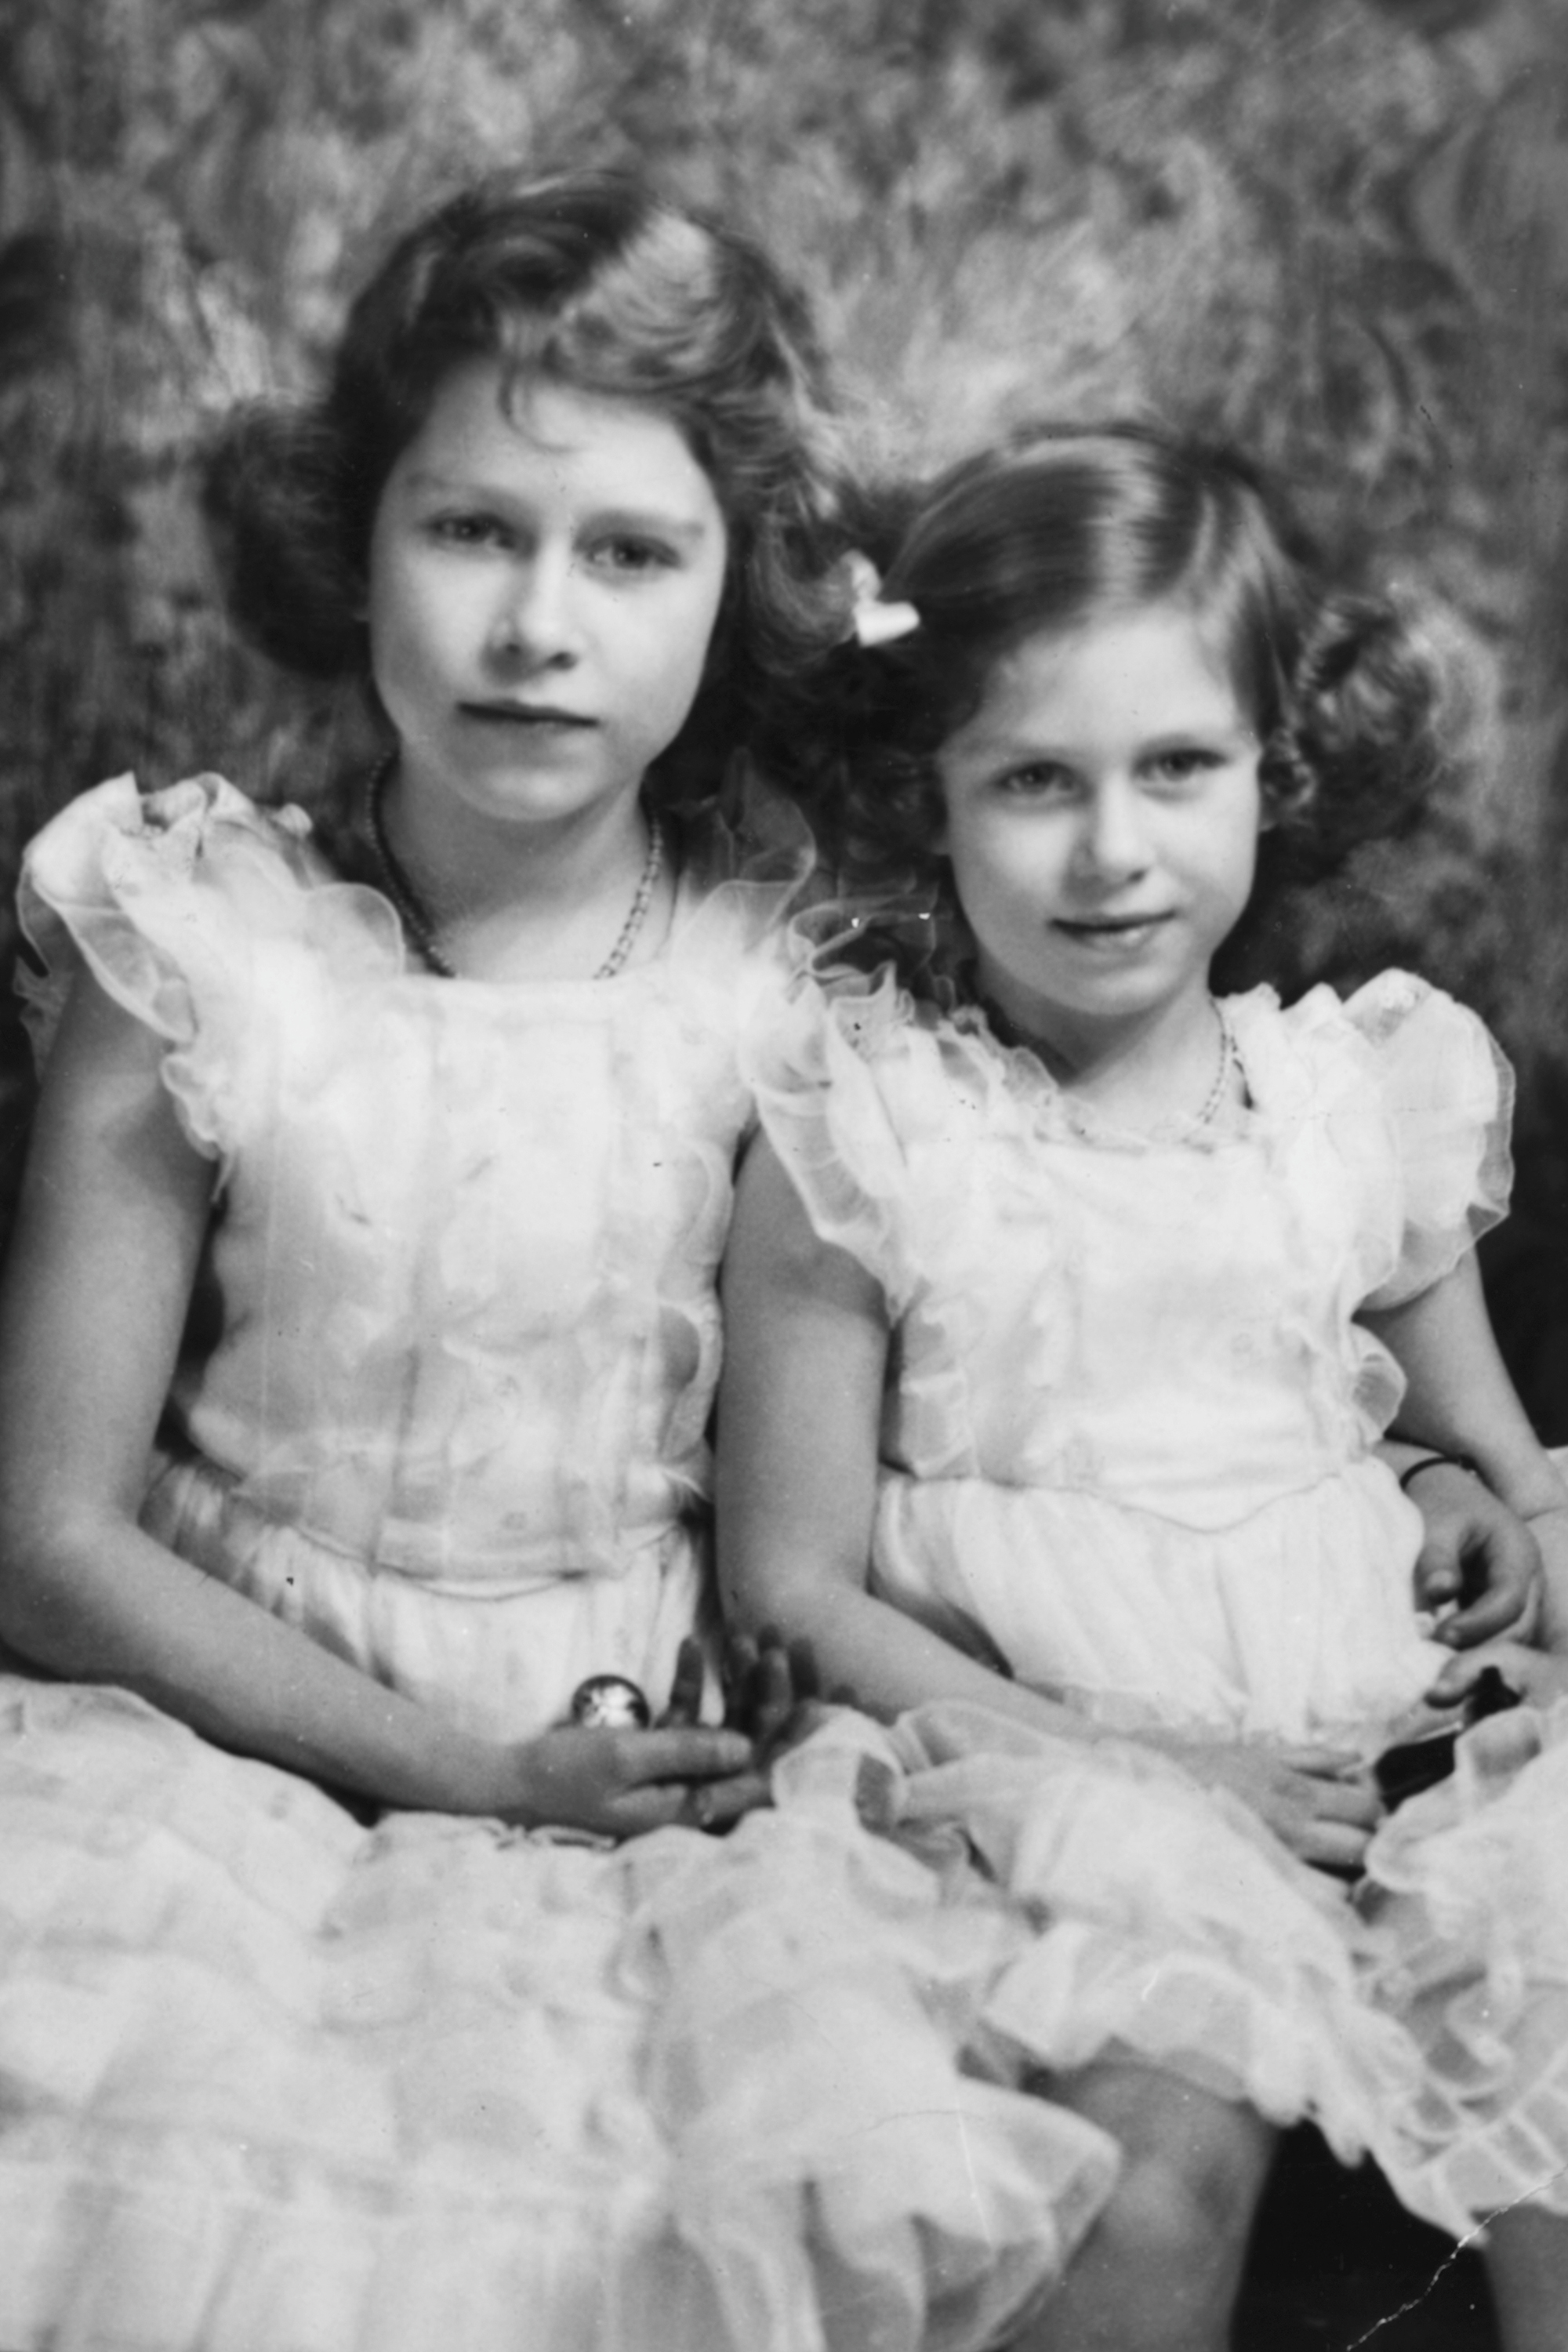 photos of the british royal family the history of the british 65 photos of the british royal family the history of the british royal family in pictures